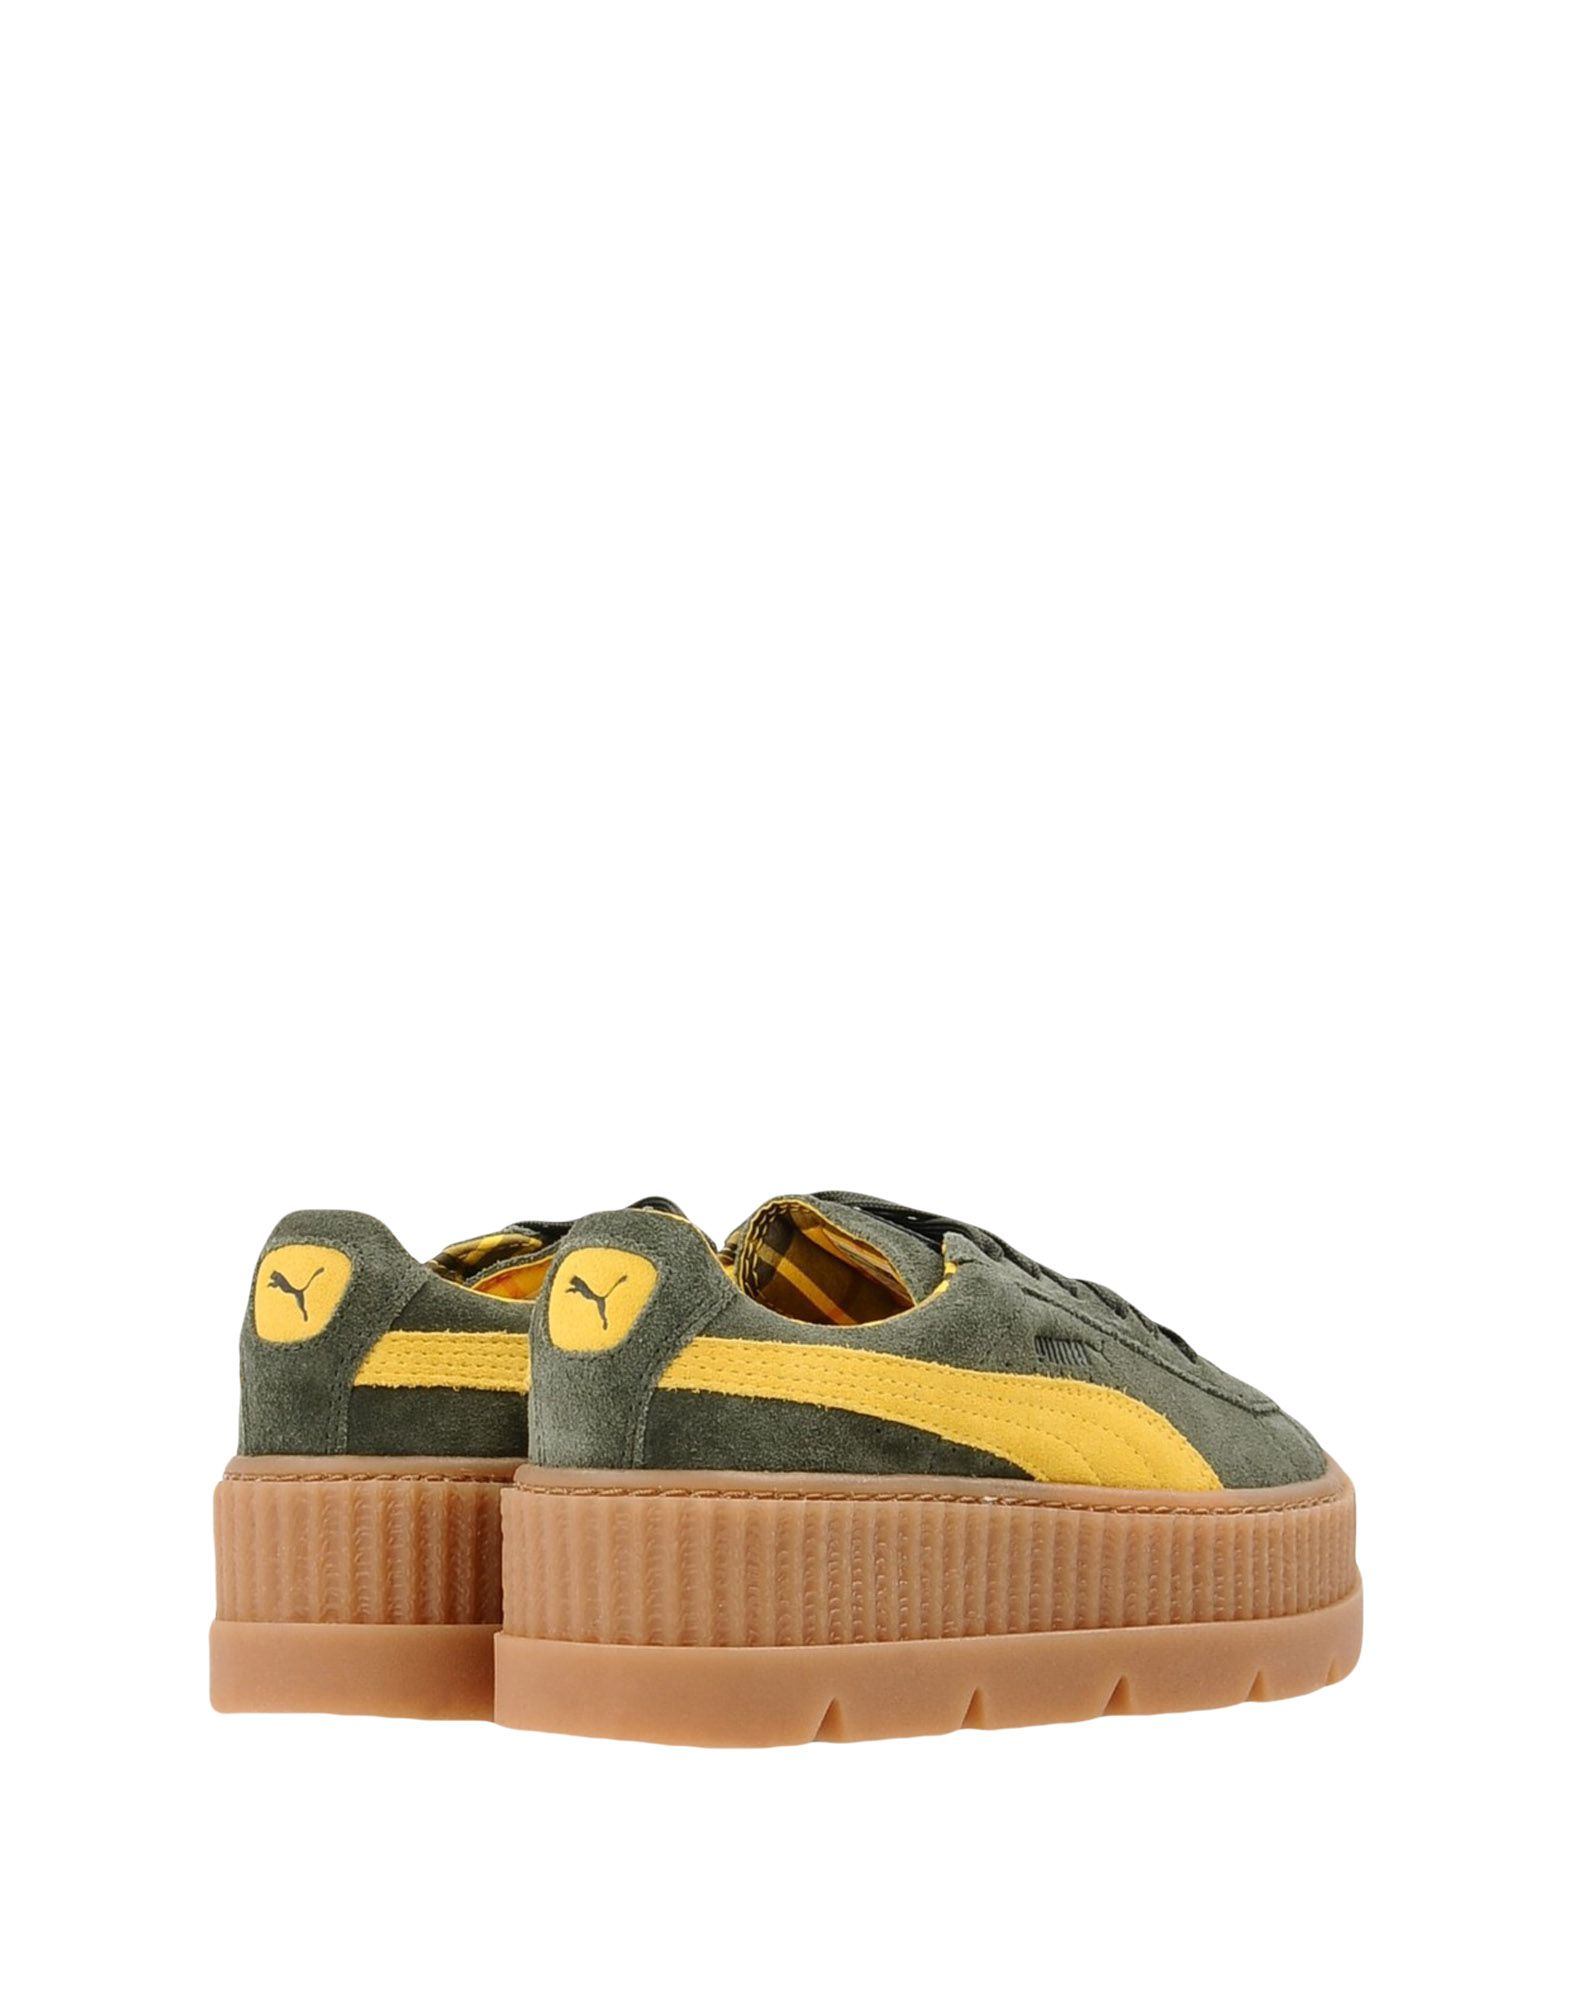 Sneakers Fenty Puma By Rihanna Cleated Creeper Suede Wns - Femme - Sneakers  Fenty Puma By ...